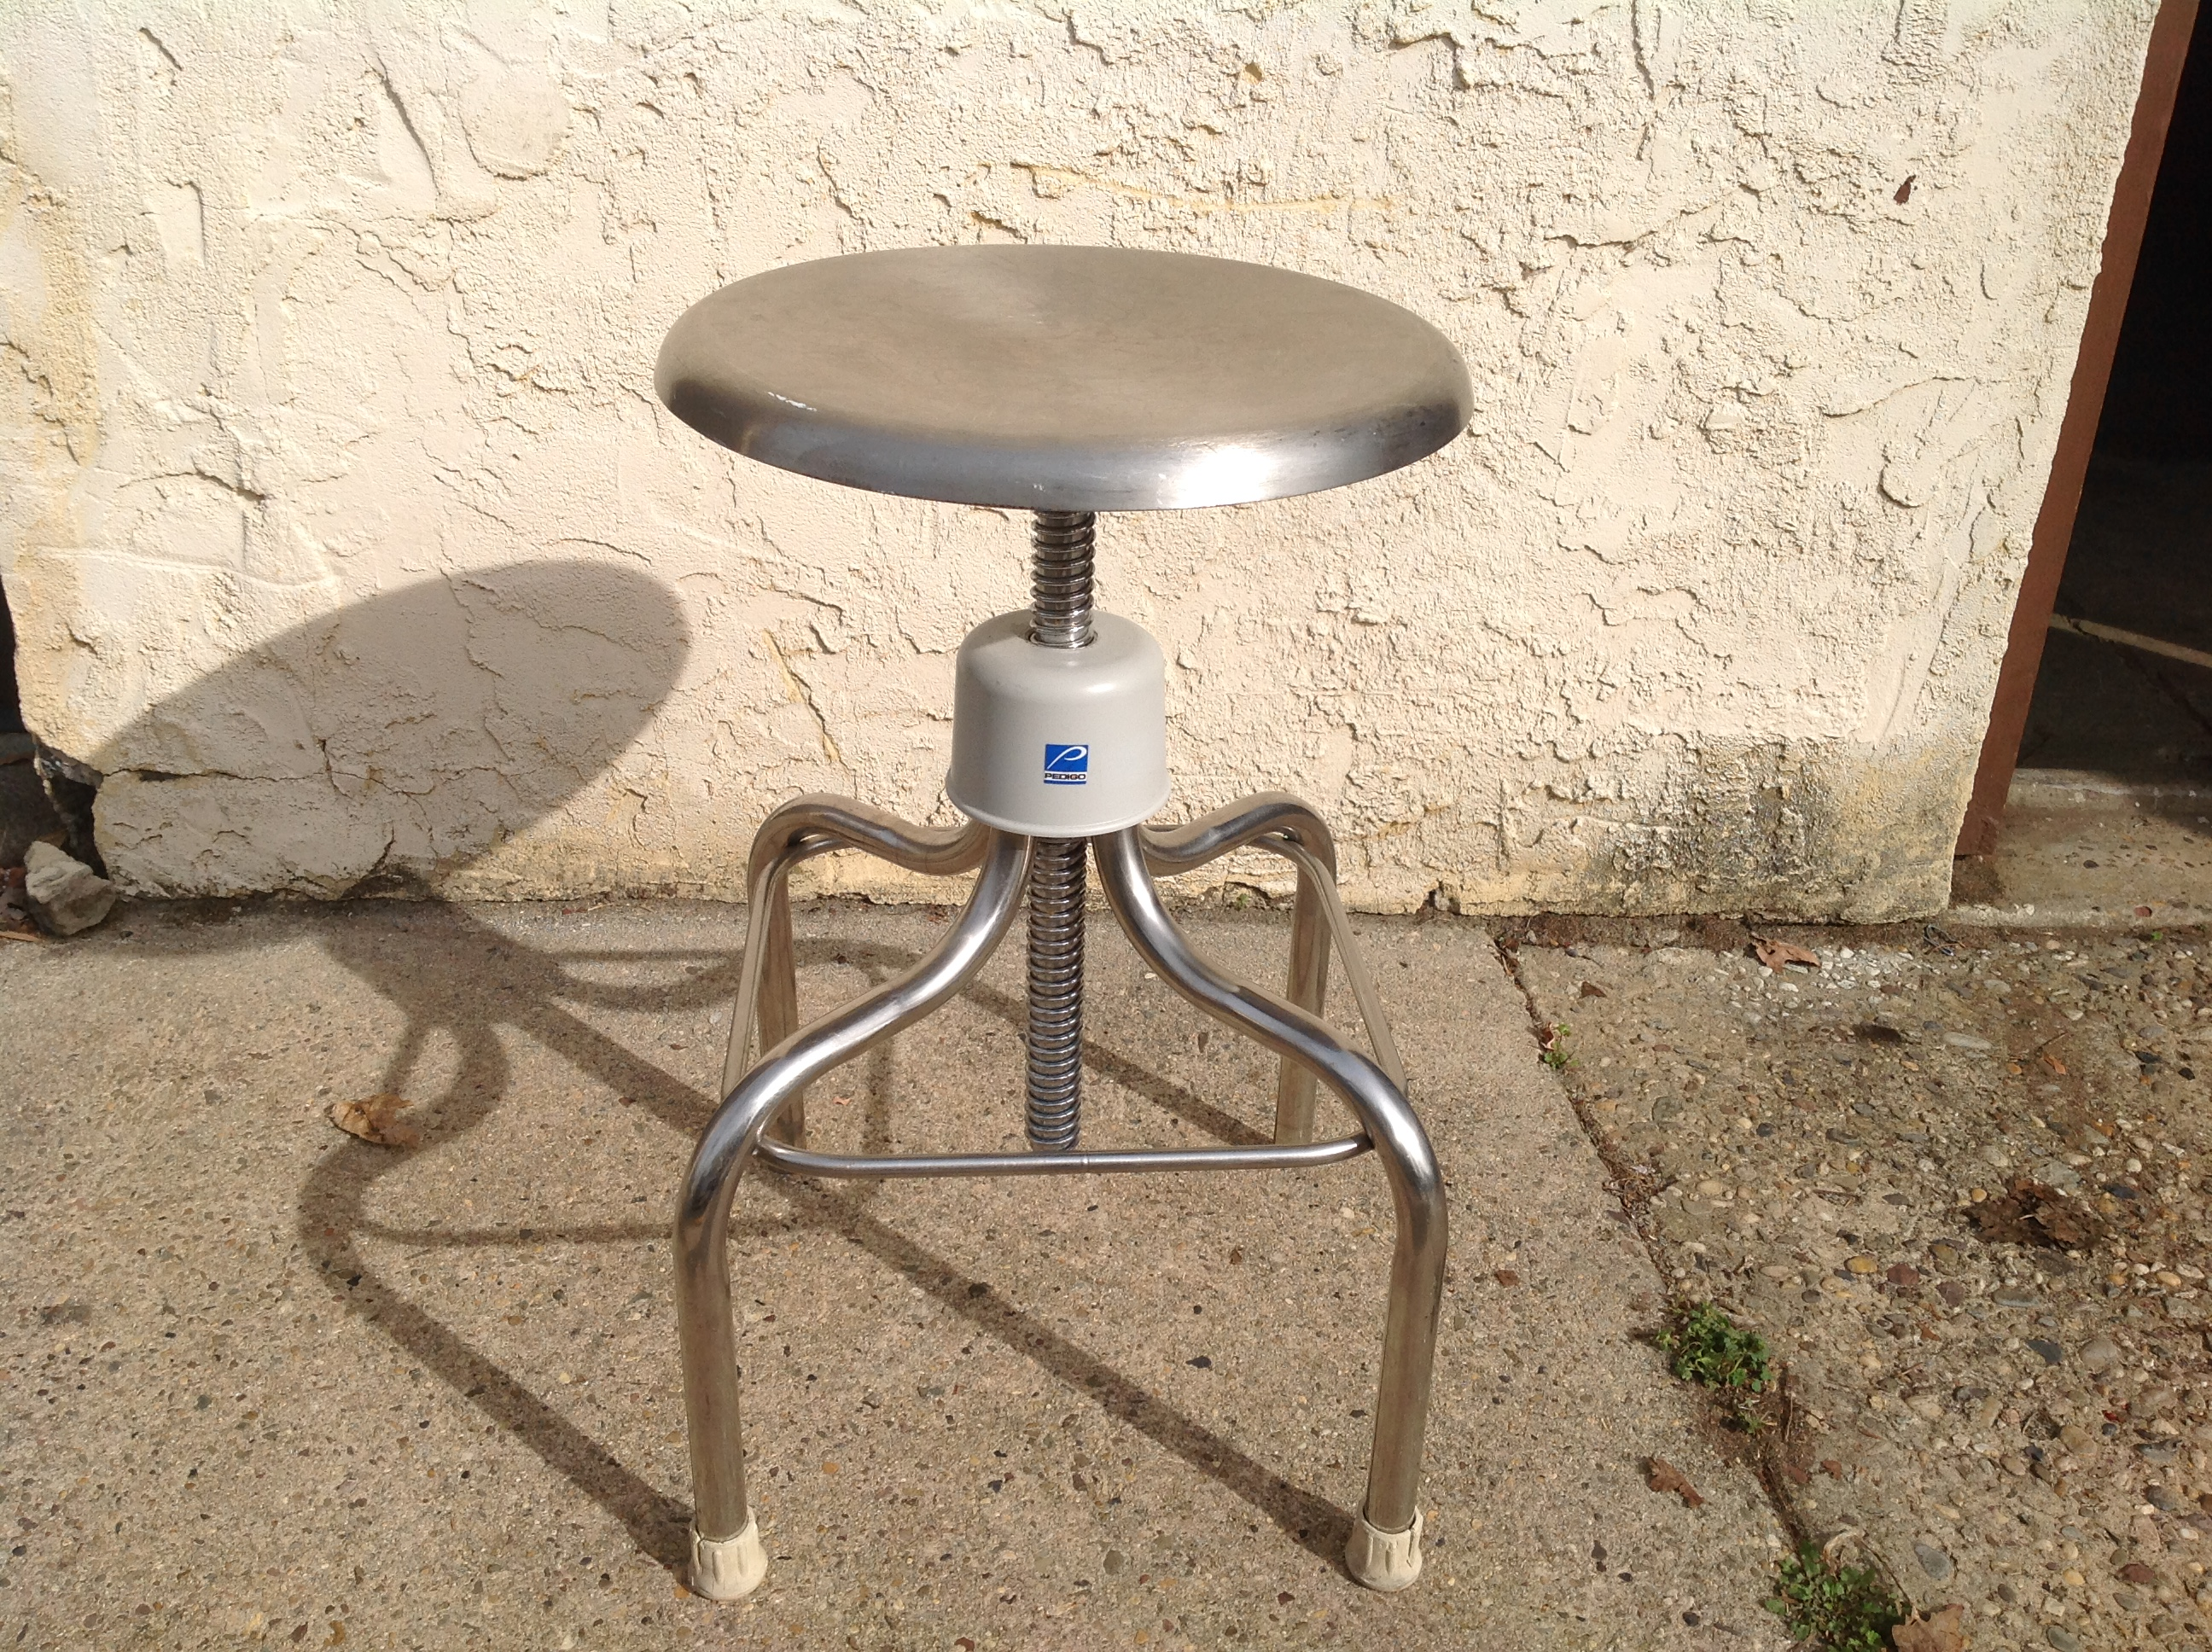 Surprising Vintage Industrial Stainless Steel Doctors Lab Stool Beatyapartments Chair Design Images Beatyapartmentscom